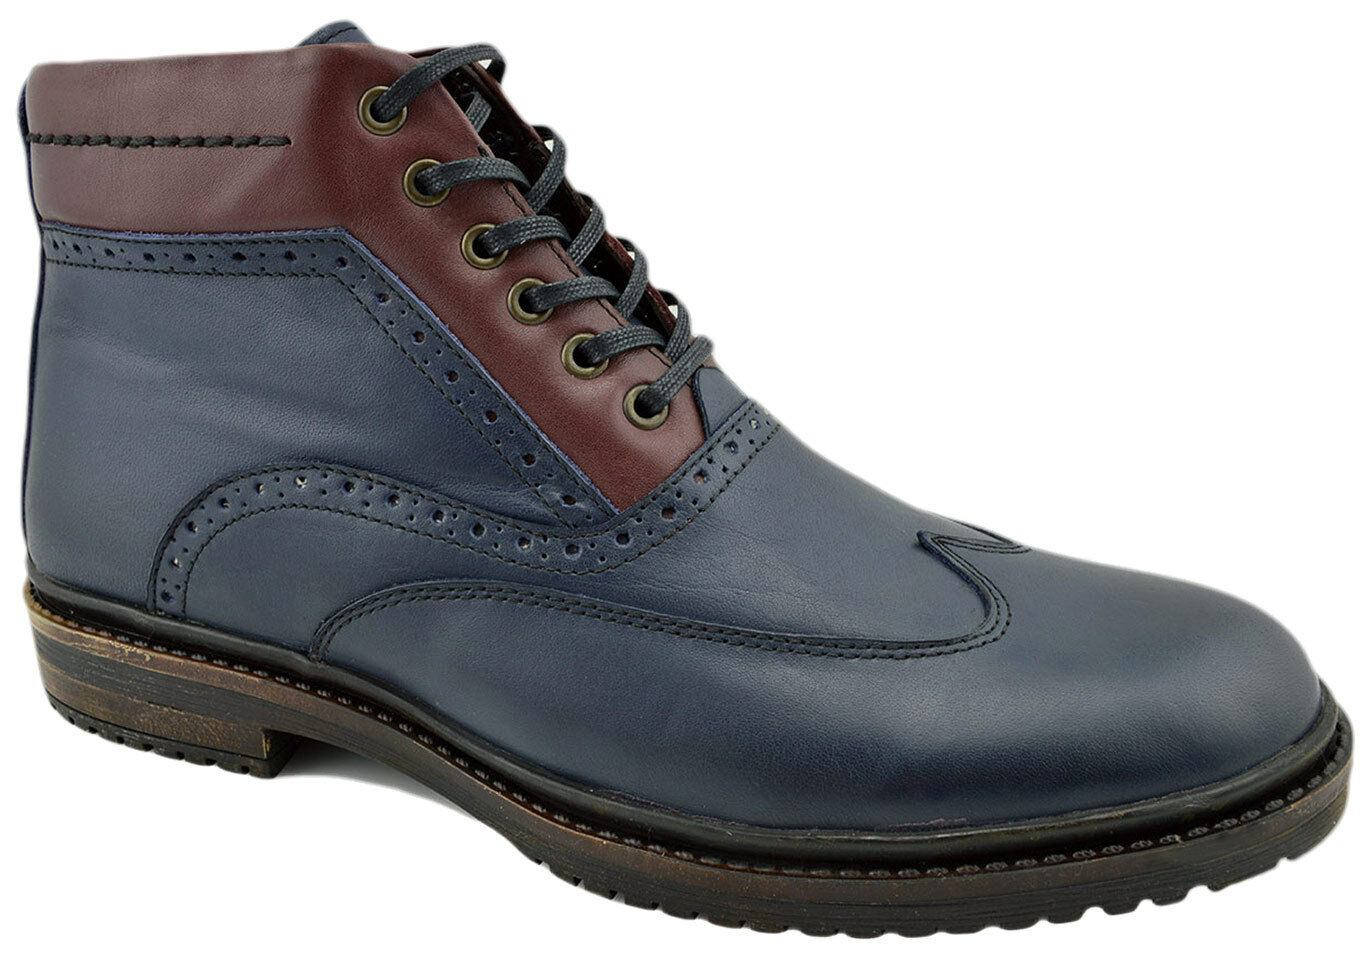 REACTOR bluee Burgandy Leather WINGTIP Brogue Ankle Boots Men shoes